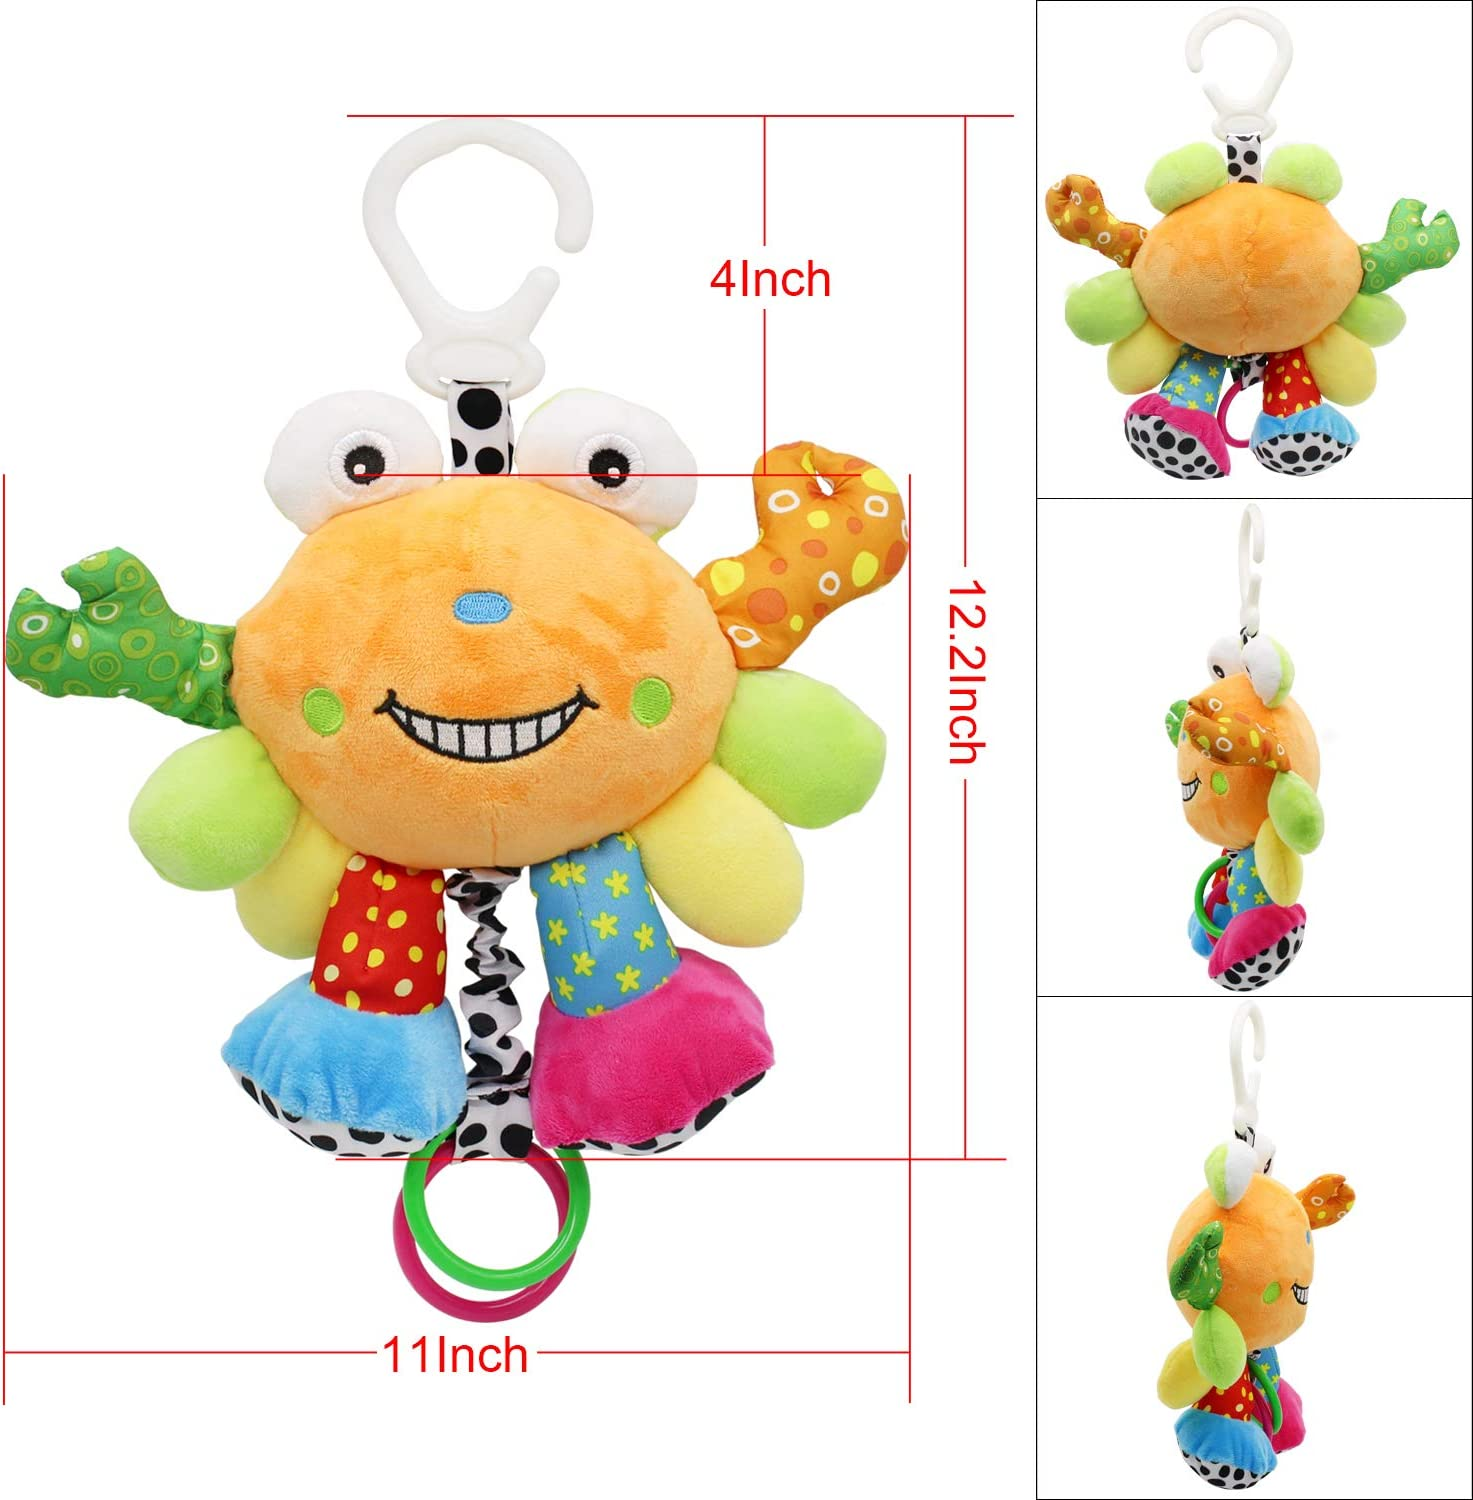 Early Development Hanging Stroller Toys for 0 3 Infant Soft Plush Rattle 6 MARUMINE Baby Car Seat Toys with Tug Music 12 Months Newborn Boys Girls Gifts 9